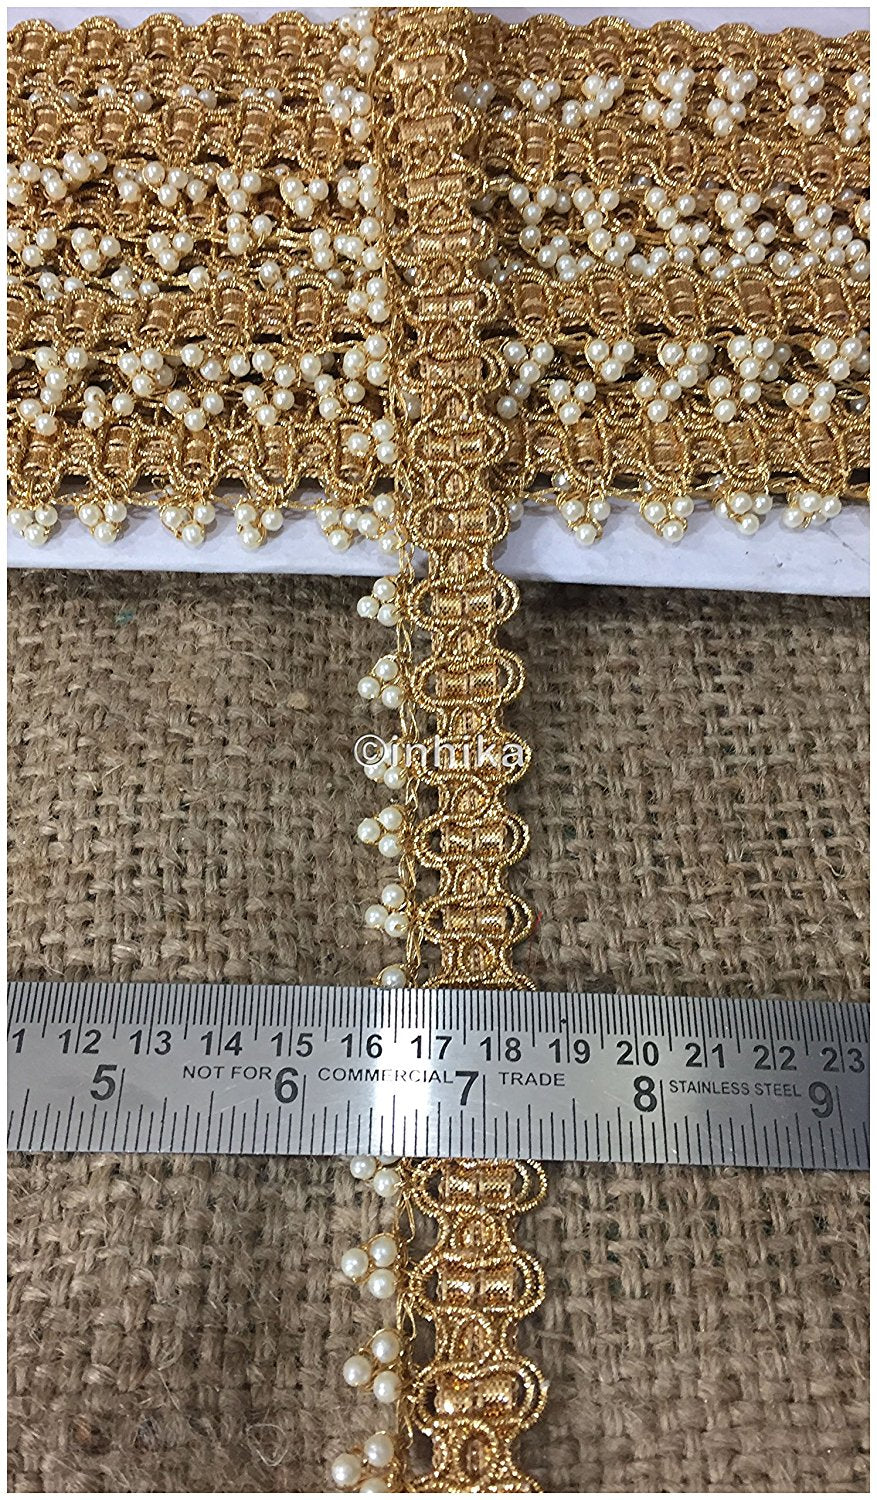 lace trim fabric beaded bridal lace fabric online by the yard Gold, Embroidery, Pearl, 1 Inch Wide material Cotton Mix